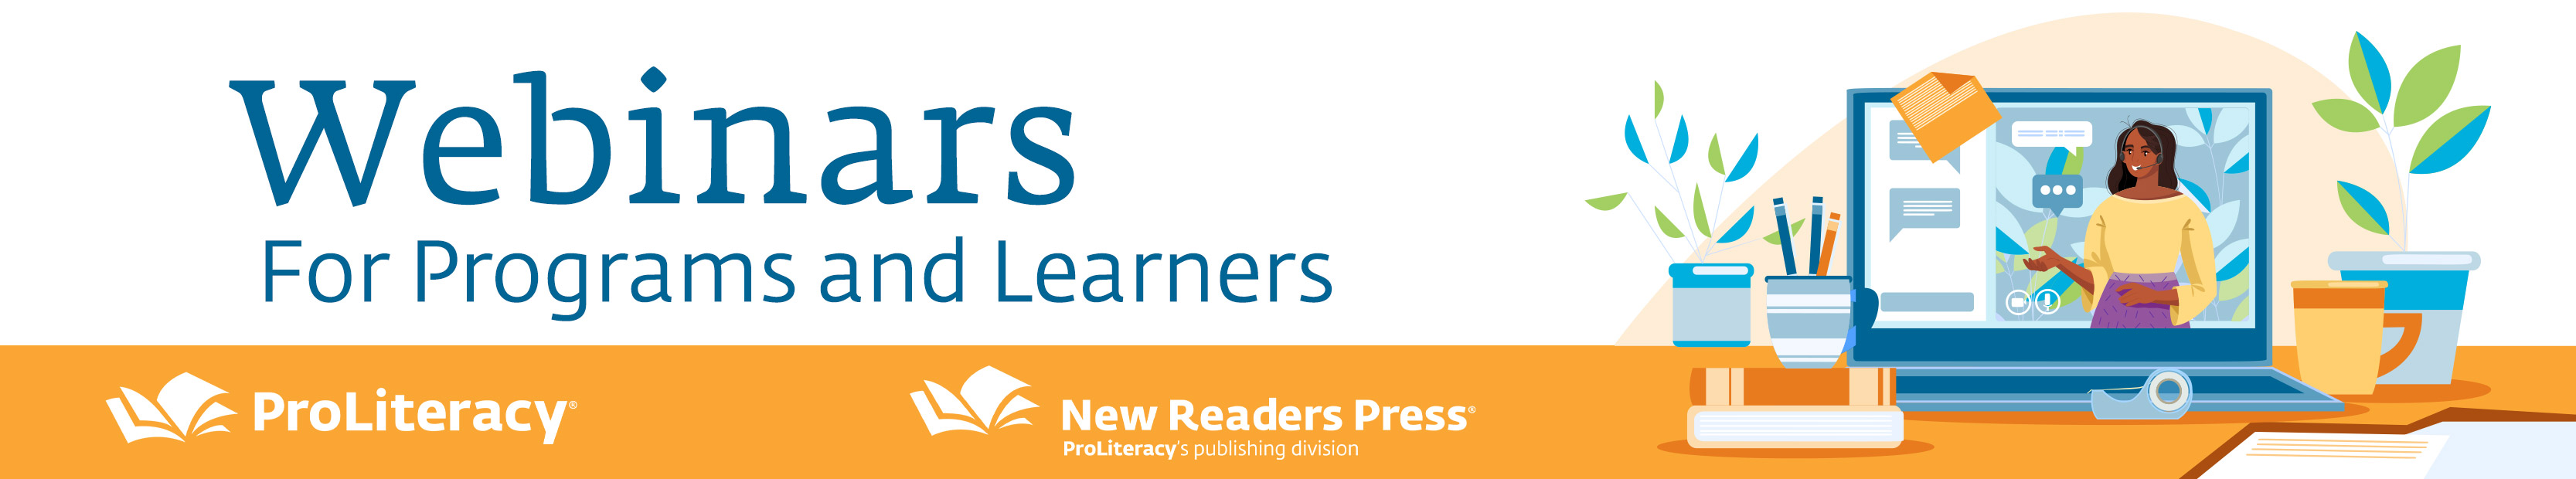 Webinars for Programs and Learners, by ProLiteracy and New Readers Press ProLiteracy's publishing division